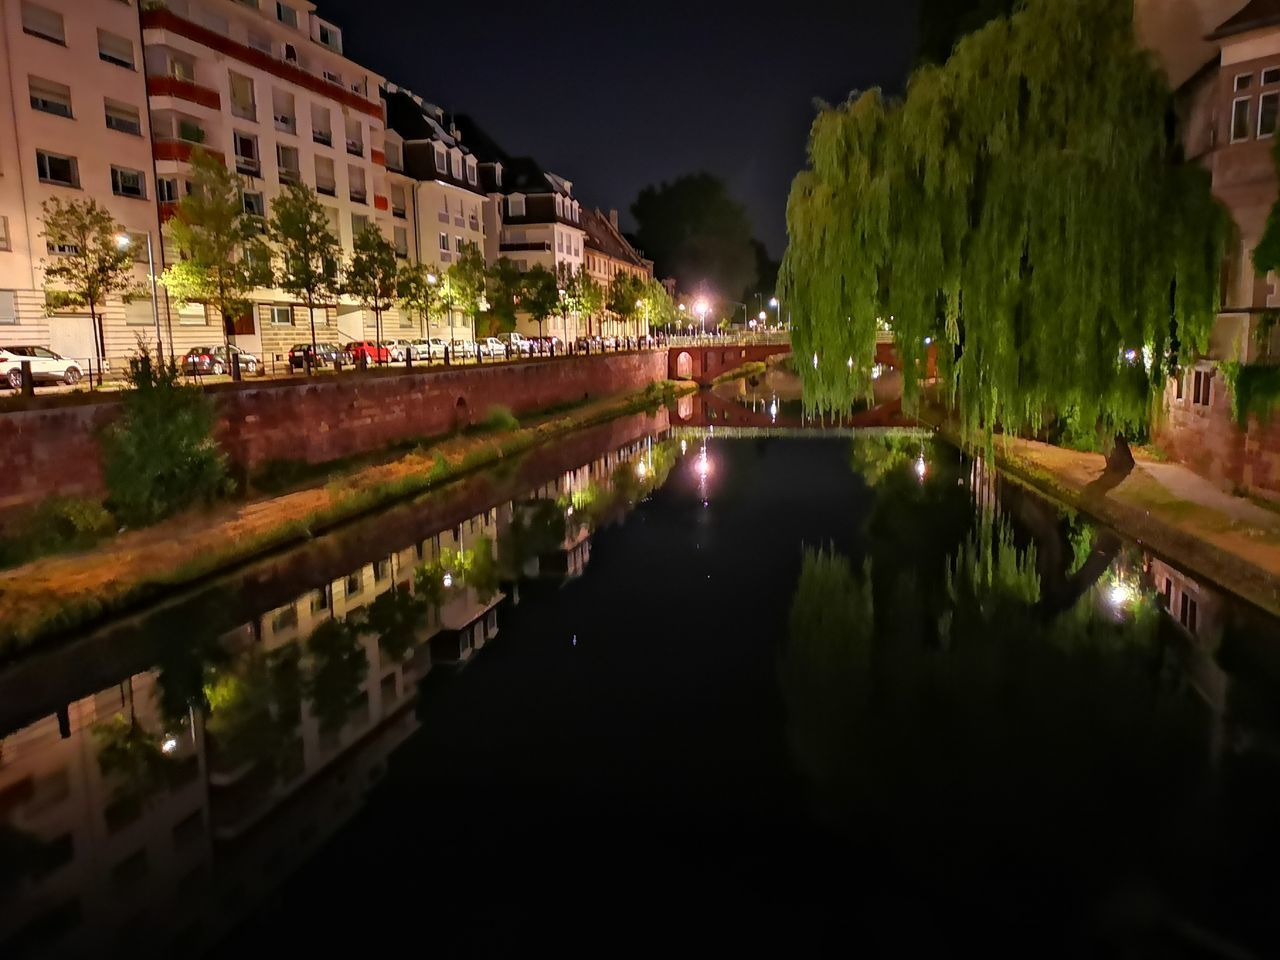 CANAL AMIDST ILLUMINATED BUILDINGS AT NIGHT